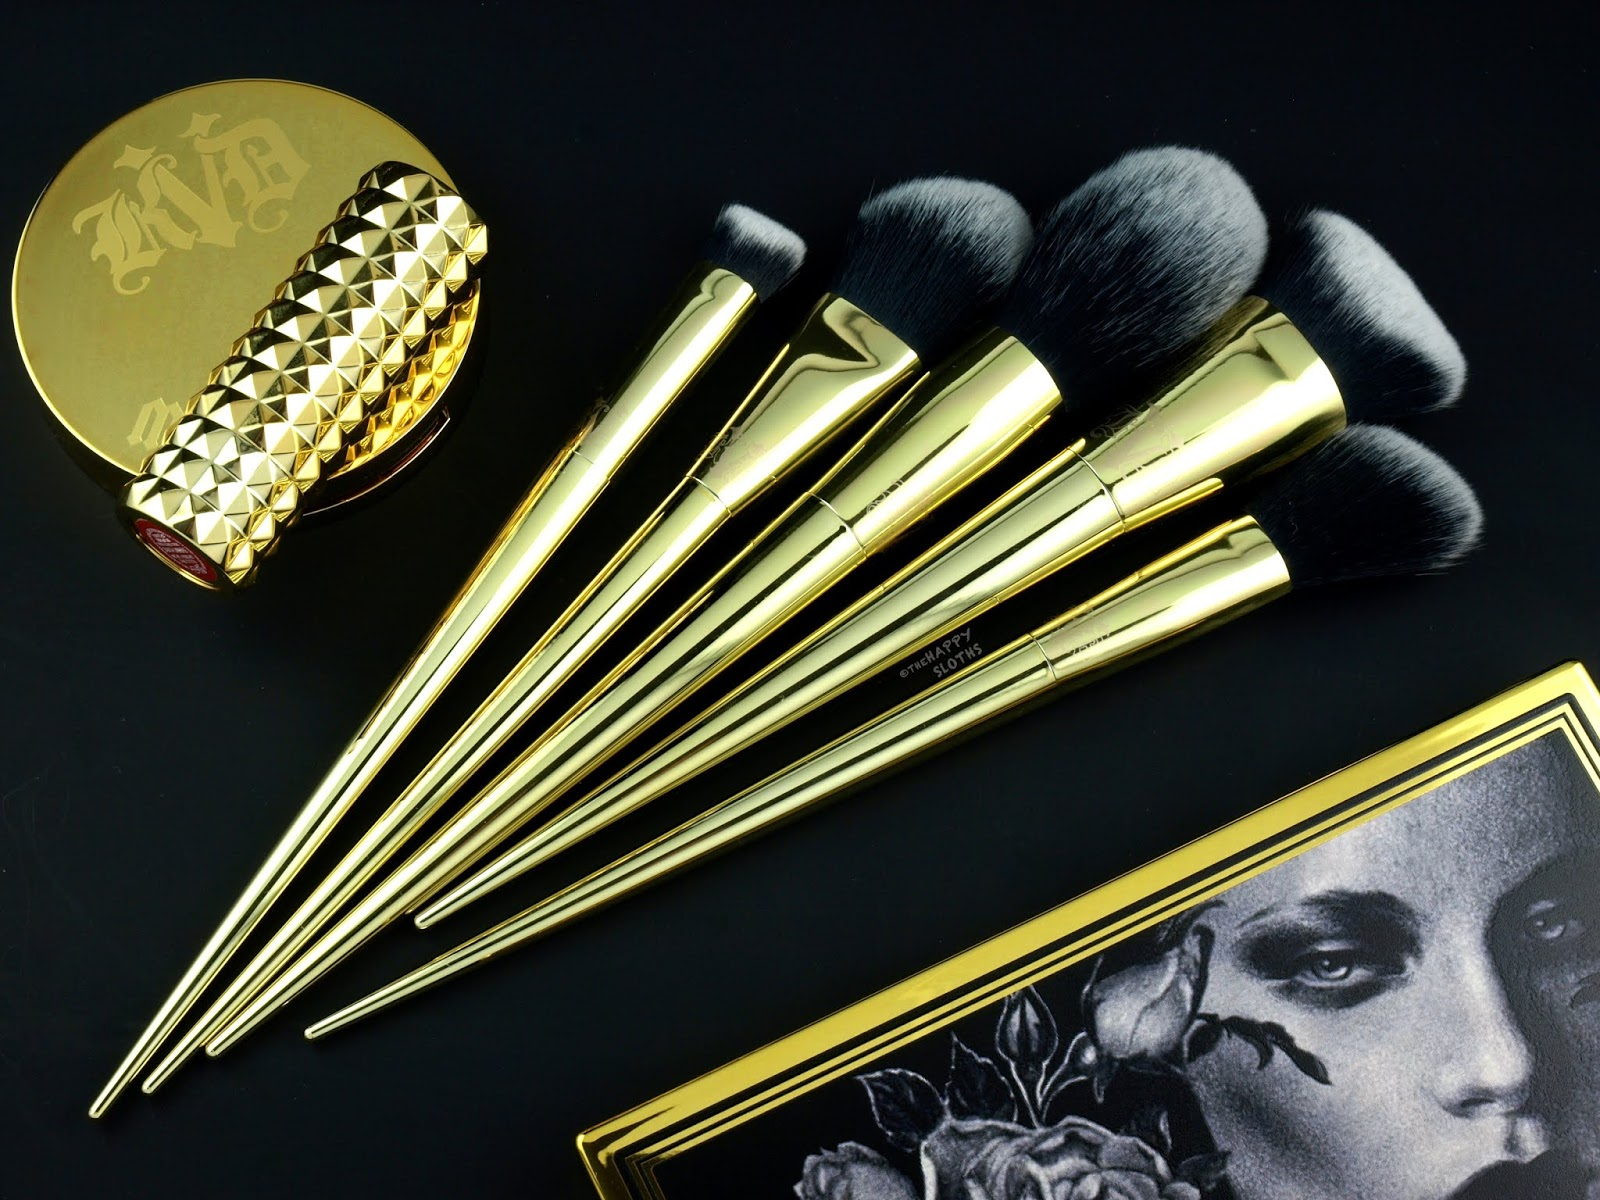 Kat Von D | 10th Anniversary Brush Set: Review and Swatches